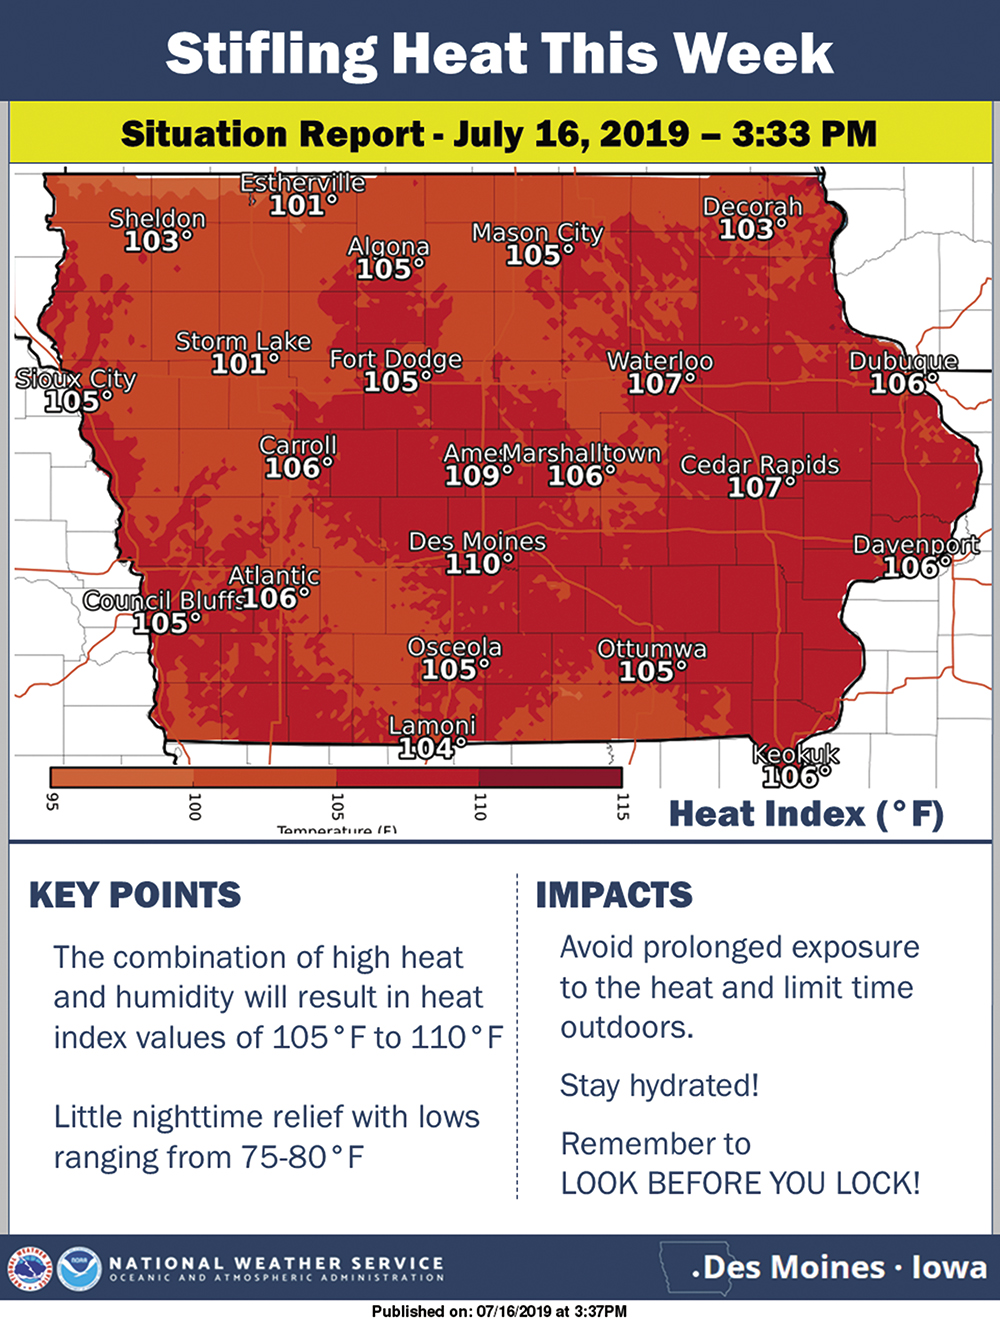 Entire state of Iowa under excessive heat advisory